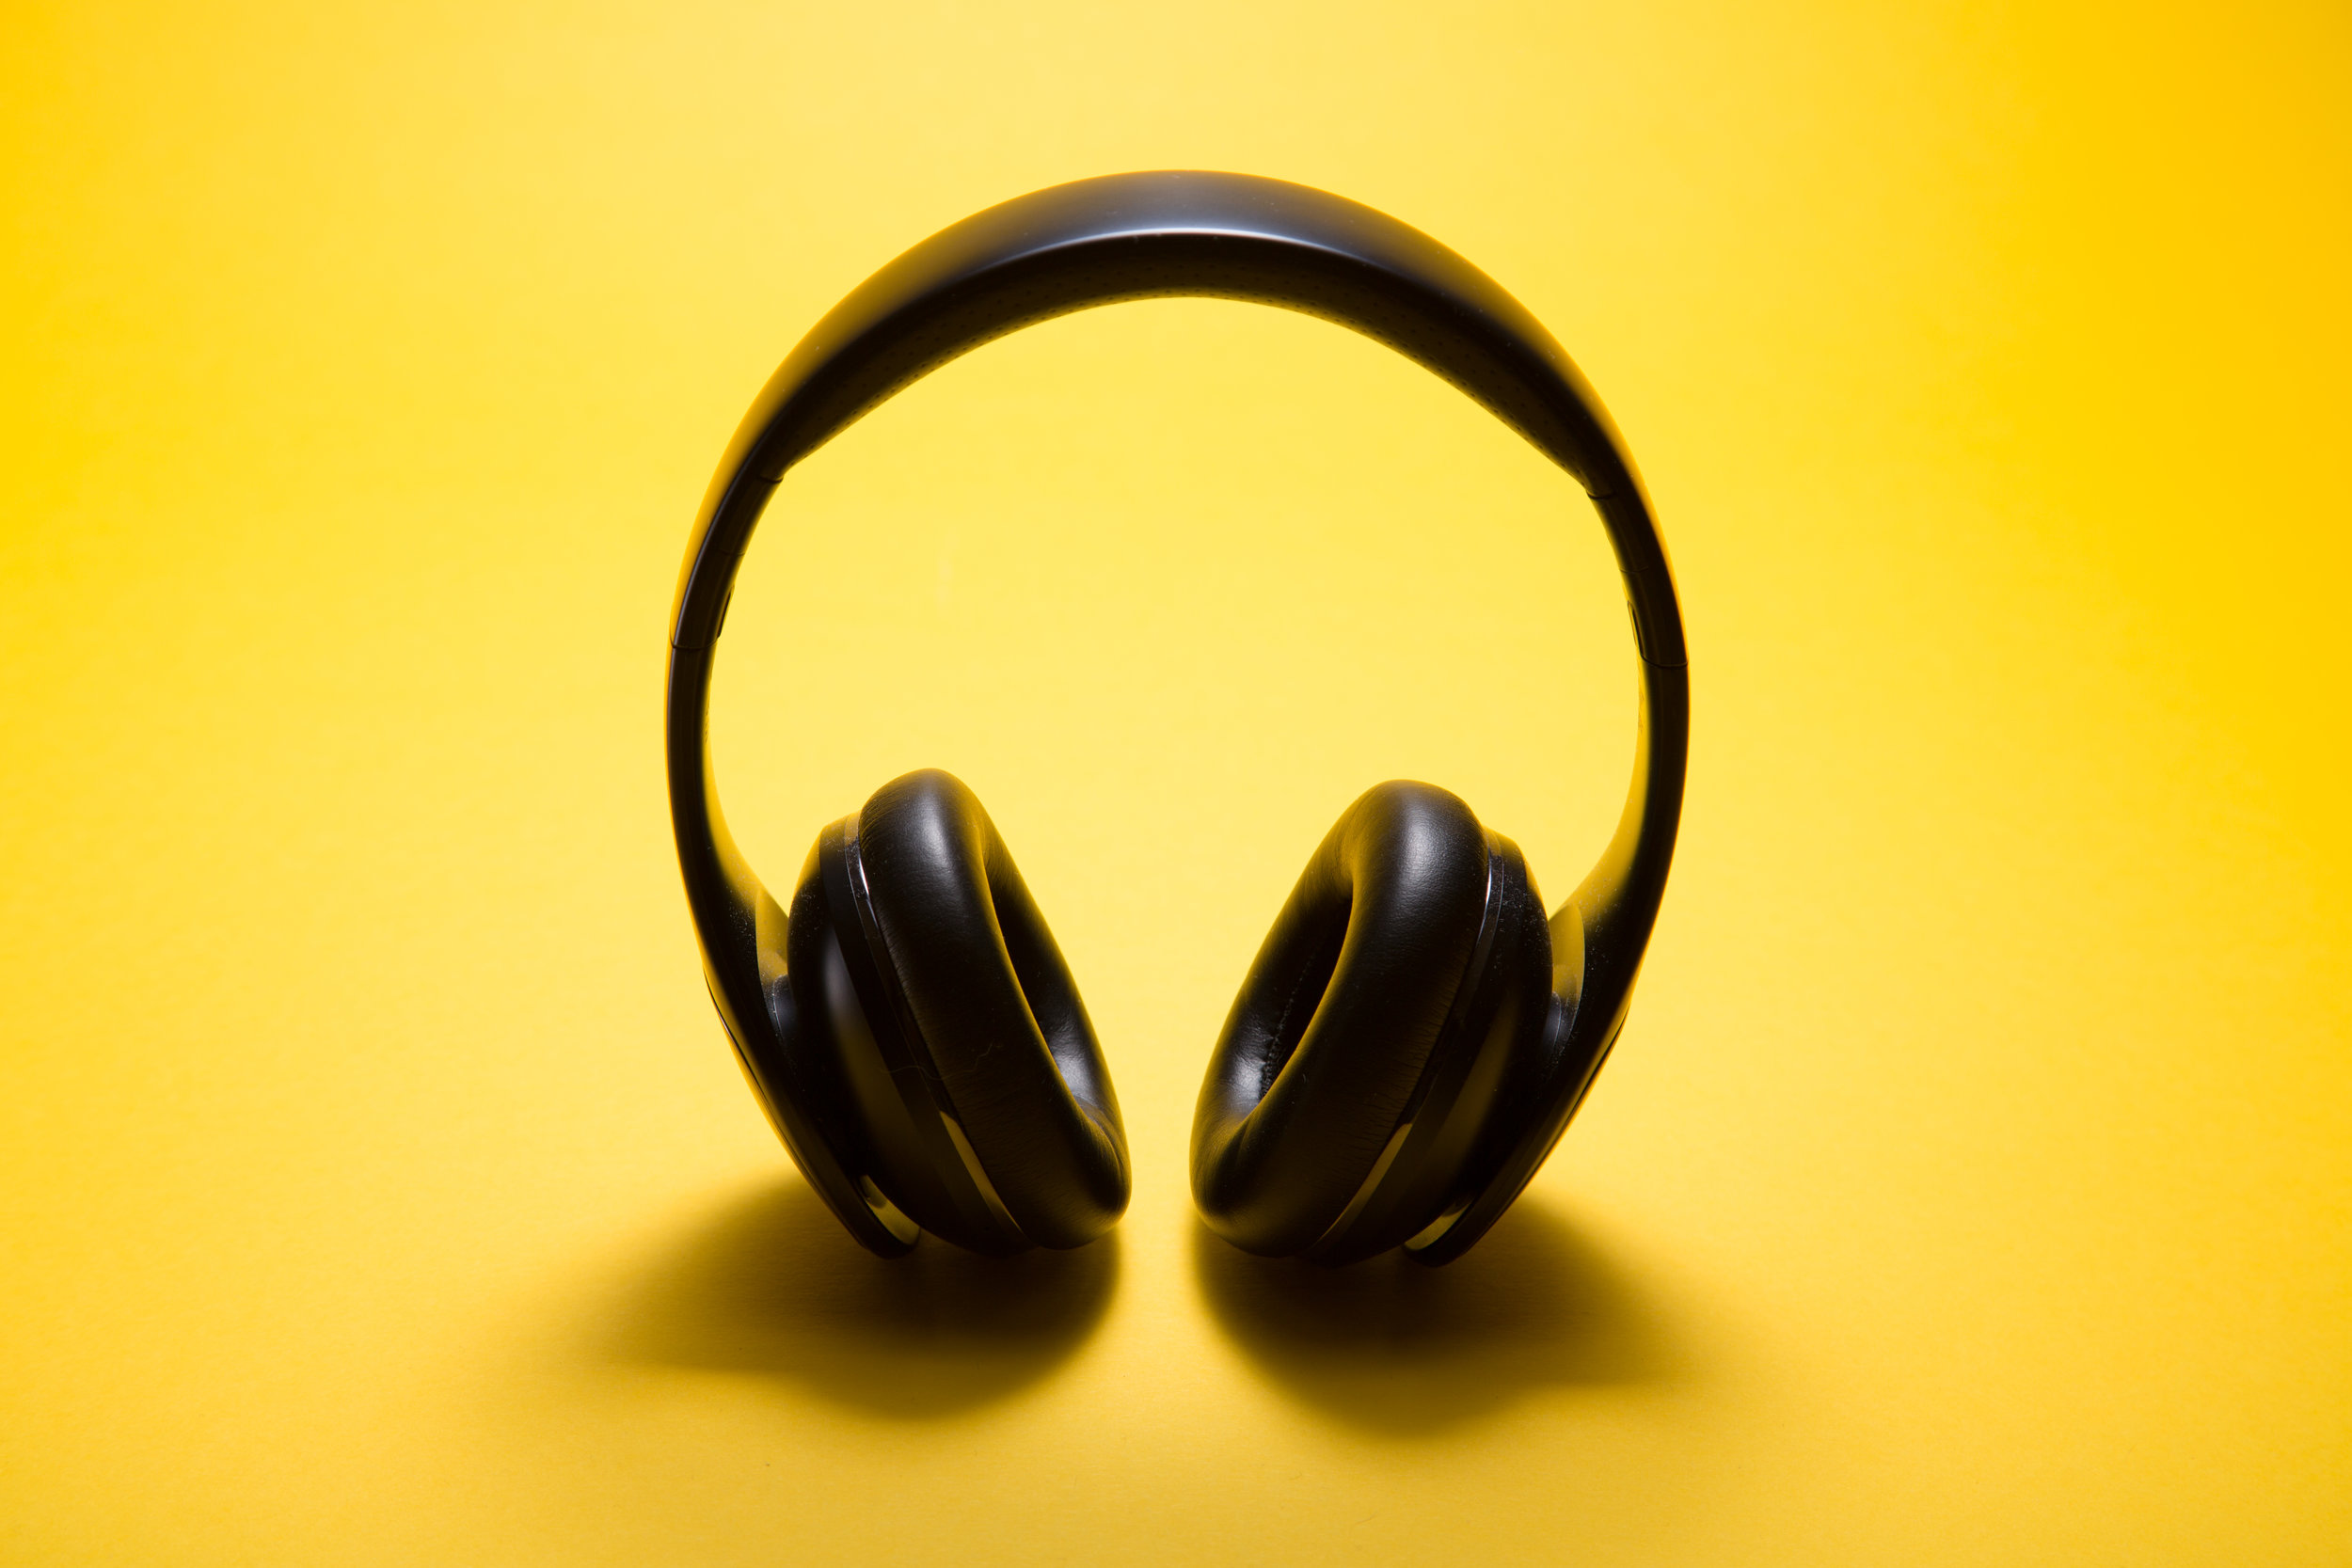 Pair of over-ear headphones on a yellow background